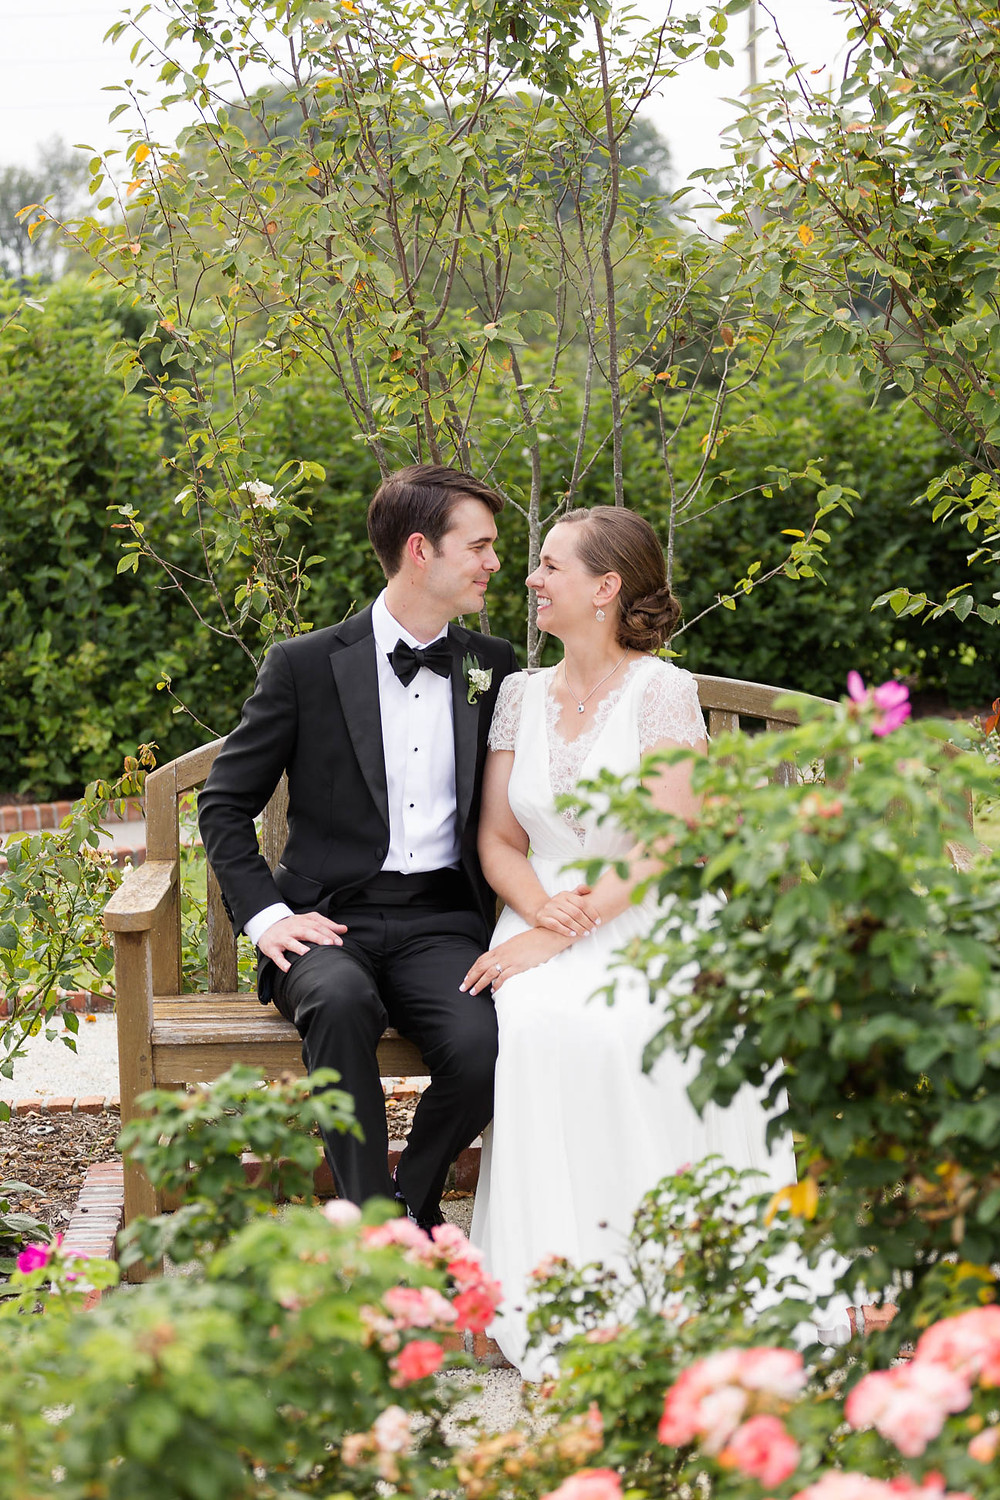 bride and groom sit among the roses in a garden